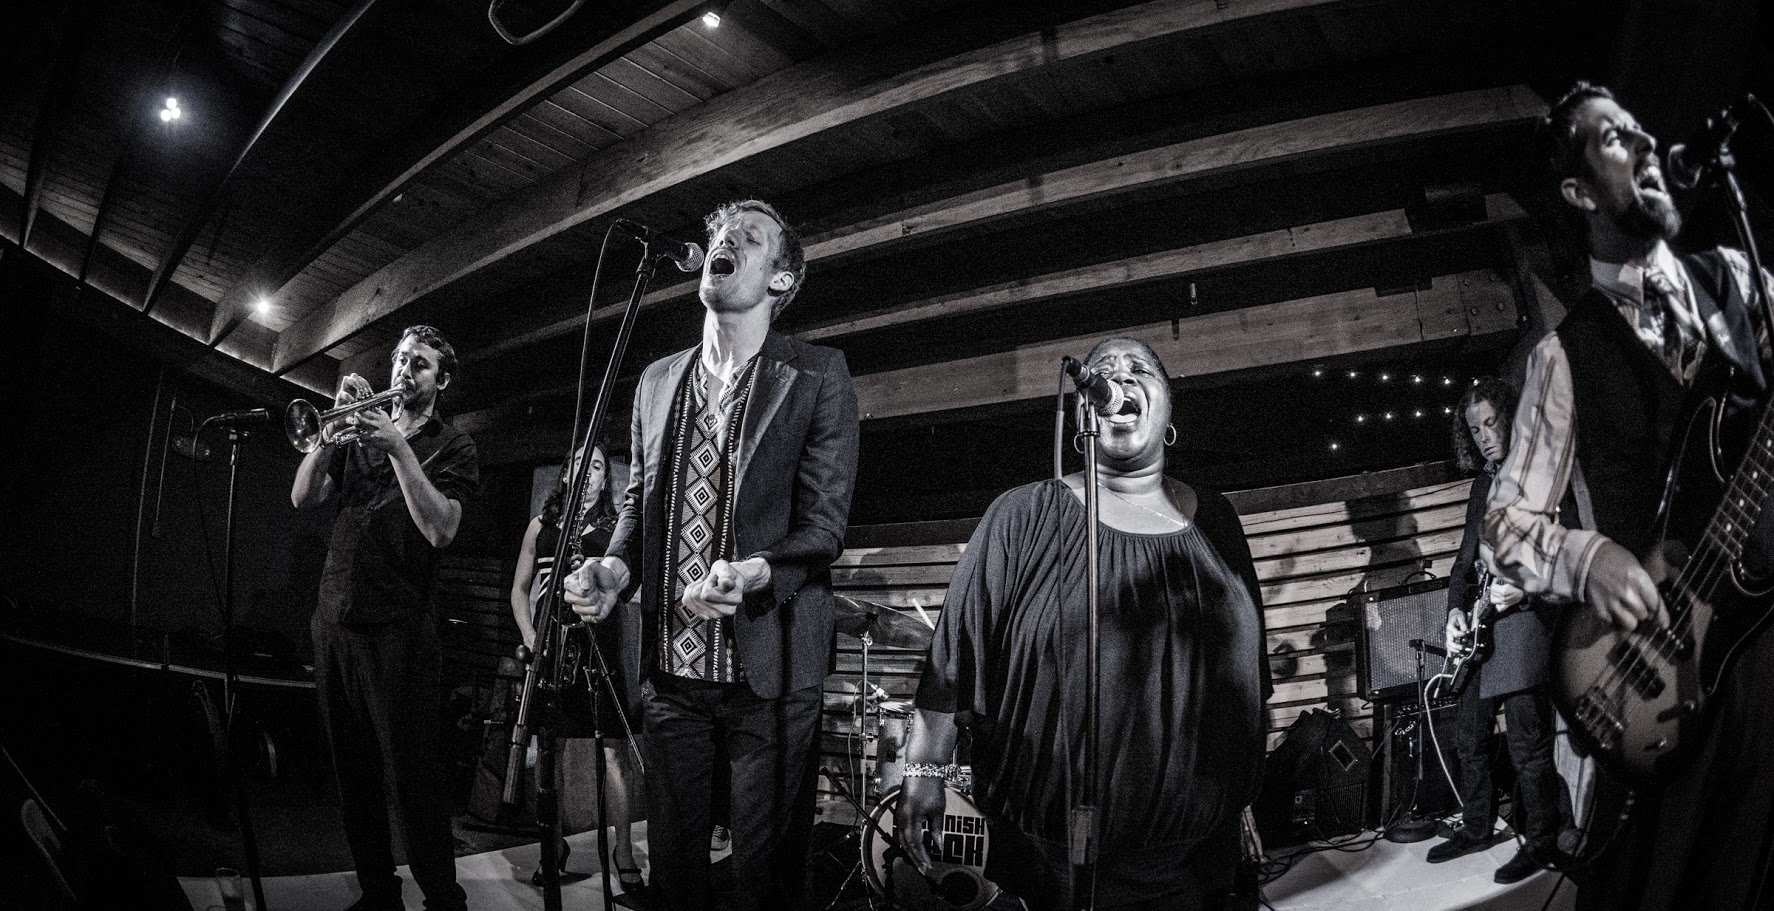 A woman sings into a microphone next to a tall man, under wood beams of Romtom's outdoor patio